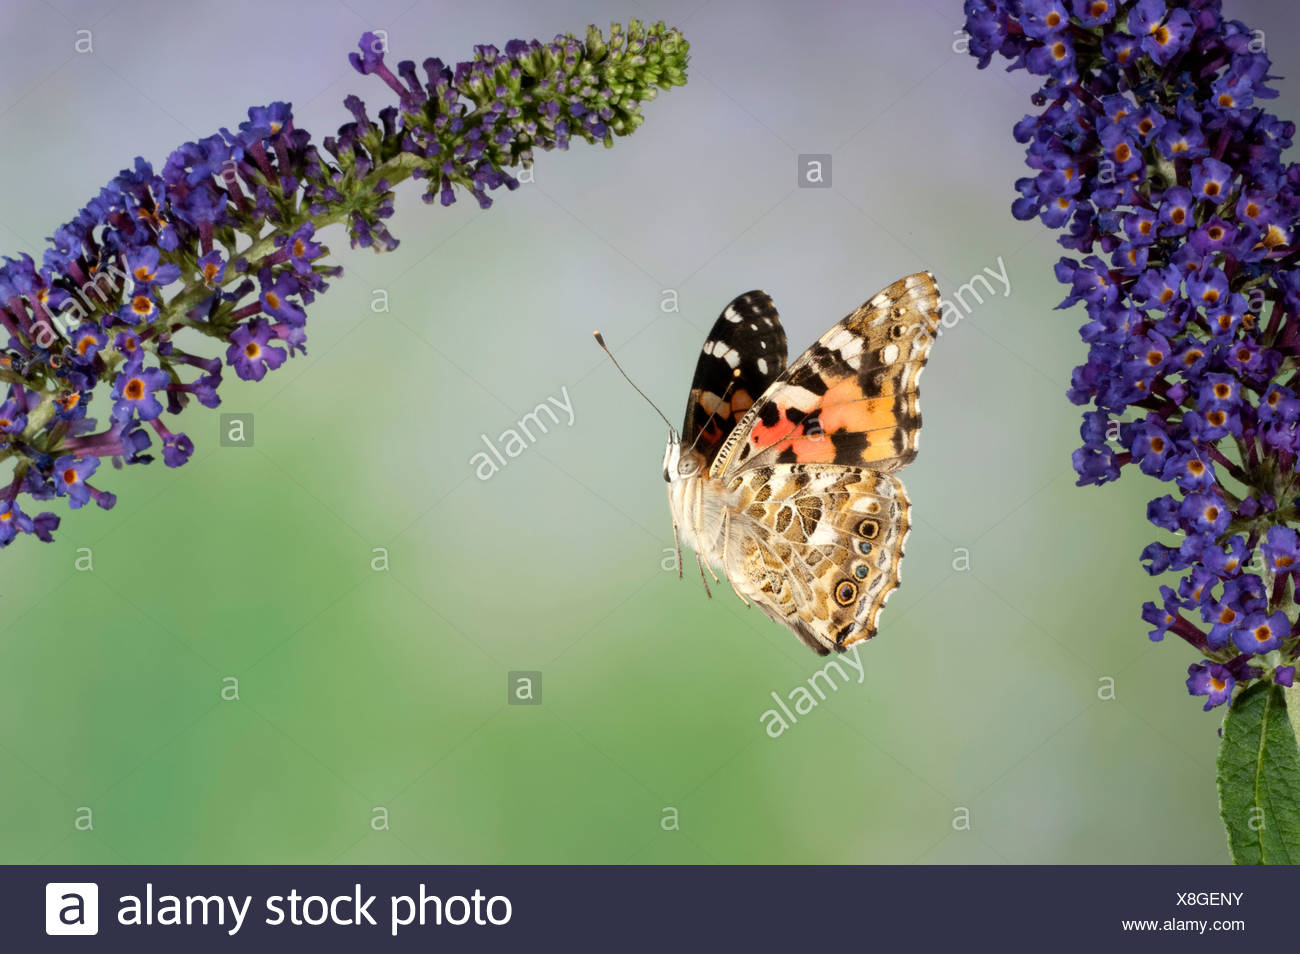 Painted Lady Butterfly Cynthia cardui adult in flight high speed photographic technique flying over buddelia migrant to UK Stock Photo